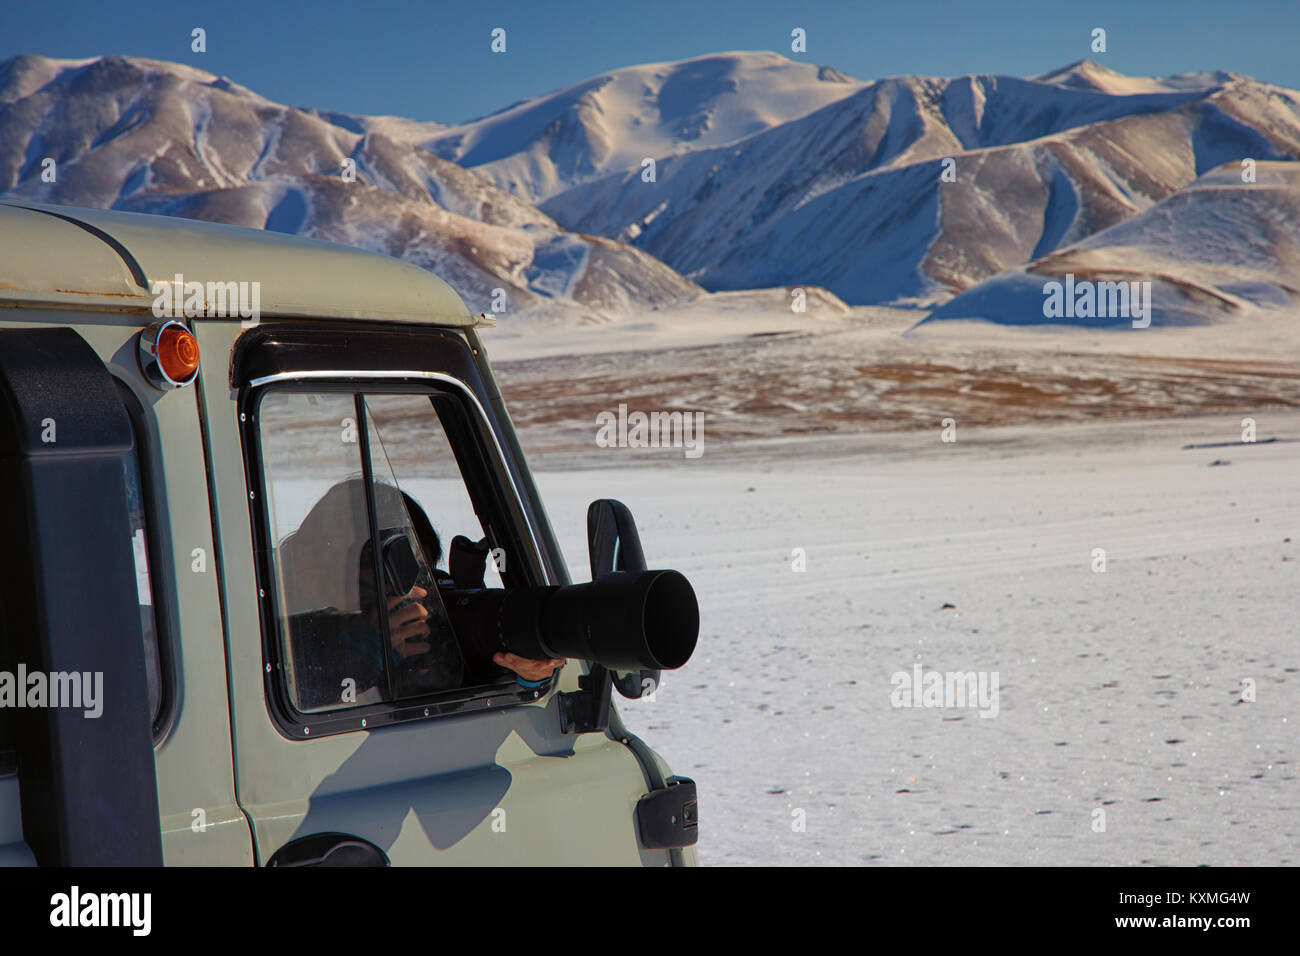 Girl taking pictures russian van UAZ 452 camper dslr zoom lengs sigma 150-600mm snow winter Mongolia snowy mountains - Stock Image